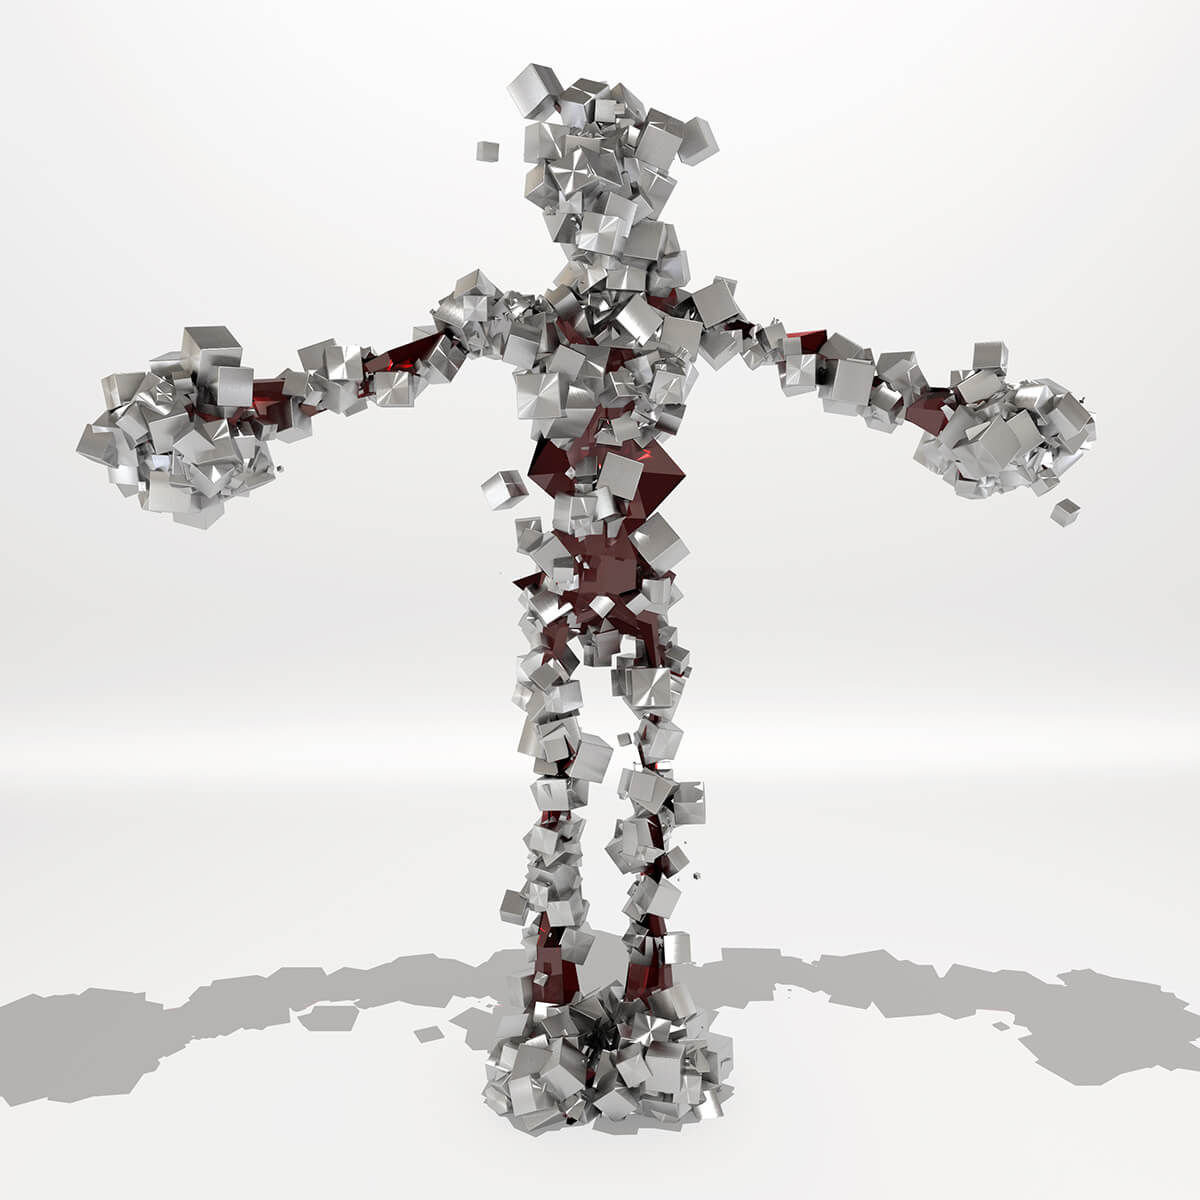 3D render of character shape made out of glass and metal cubes